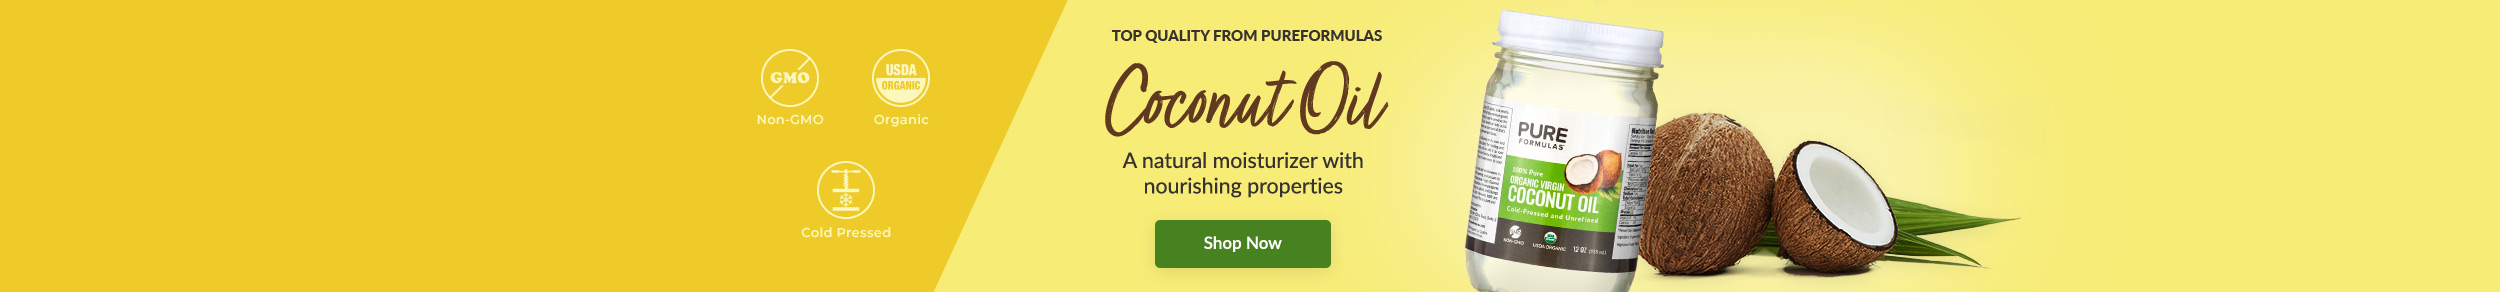 https://i3.pureformulas.net/images/static/Pureformulas-Coconut-Oil_slide2_061218.jpg